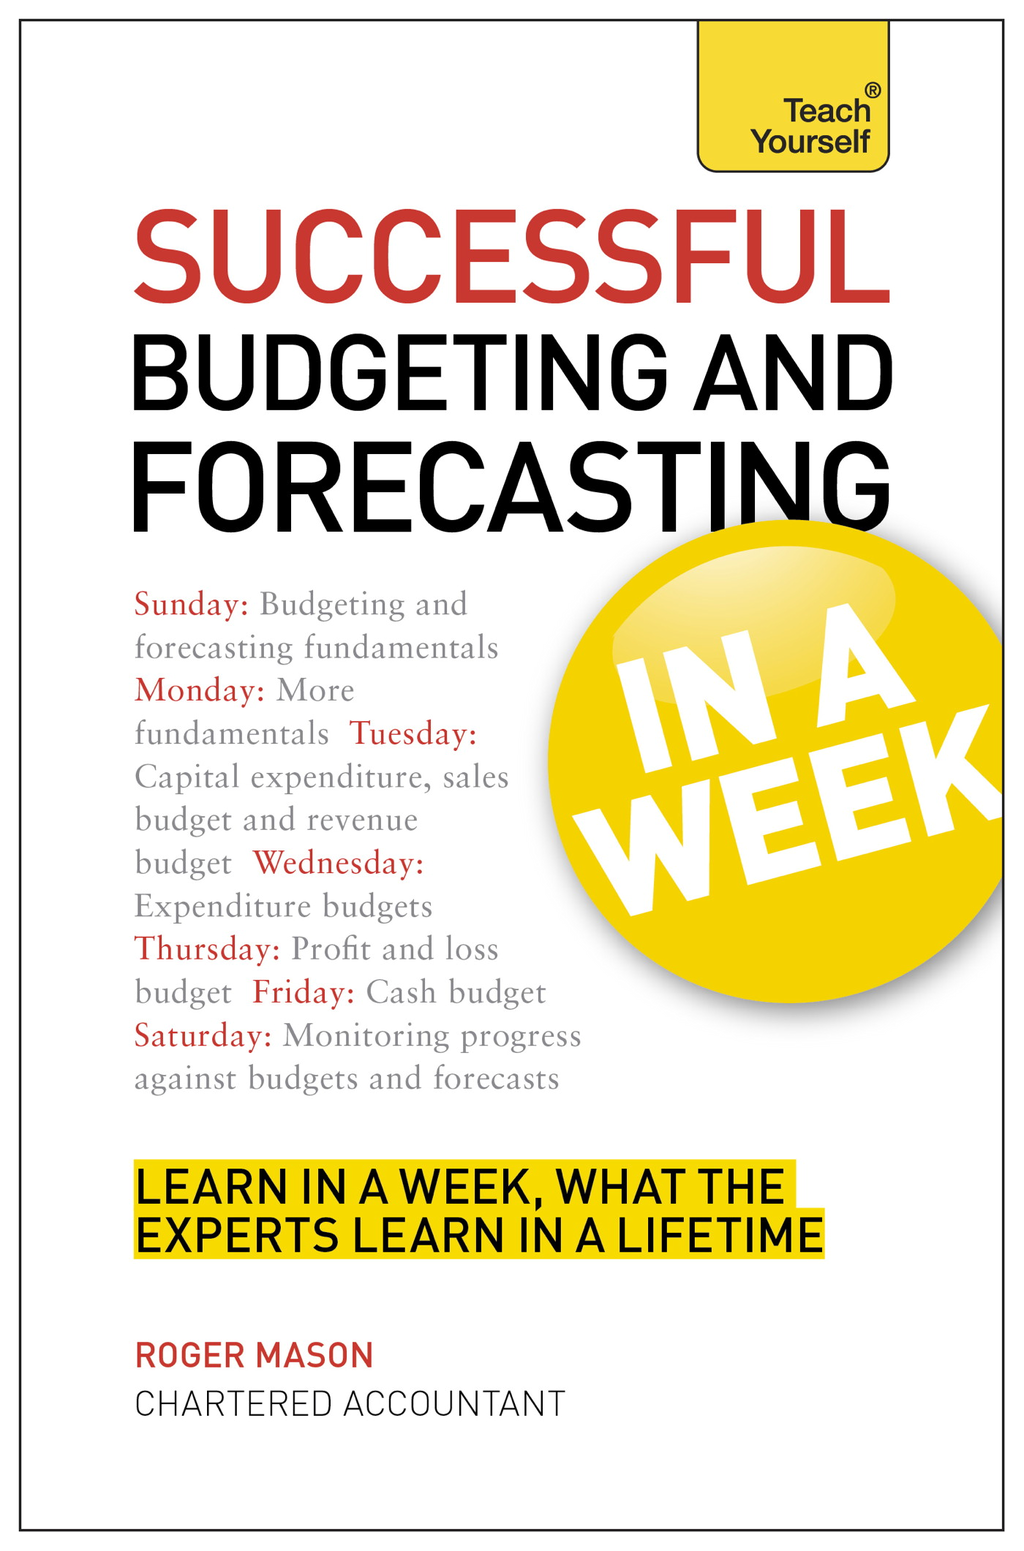 Successful Budgeting and Forecasting in a Week By: Roger Mason